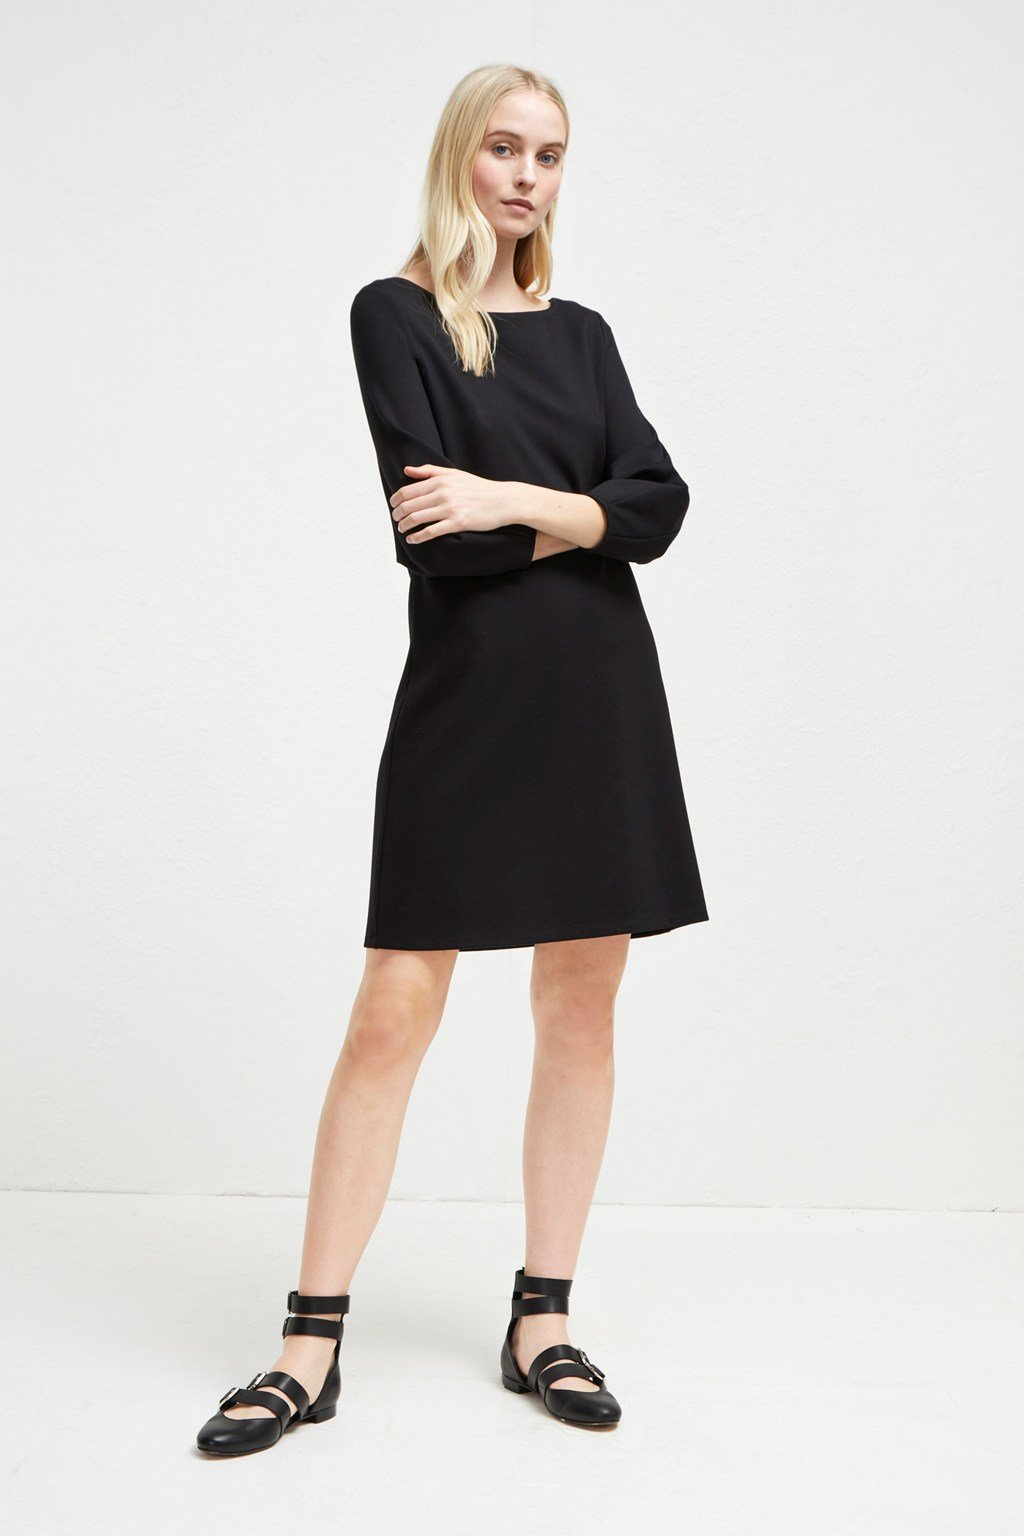 e14fc3dc50 Luella Ponte Jersey Tunic Dress. loading images... loading images...  loading images.